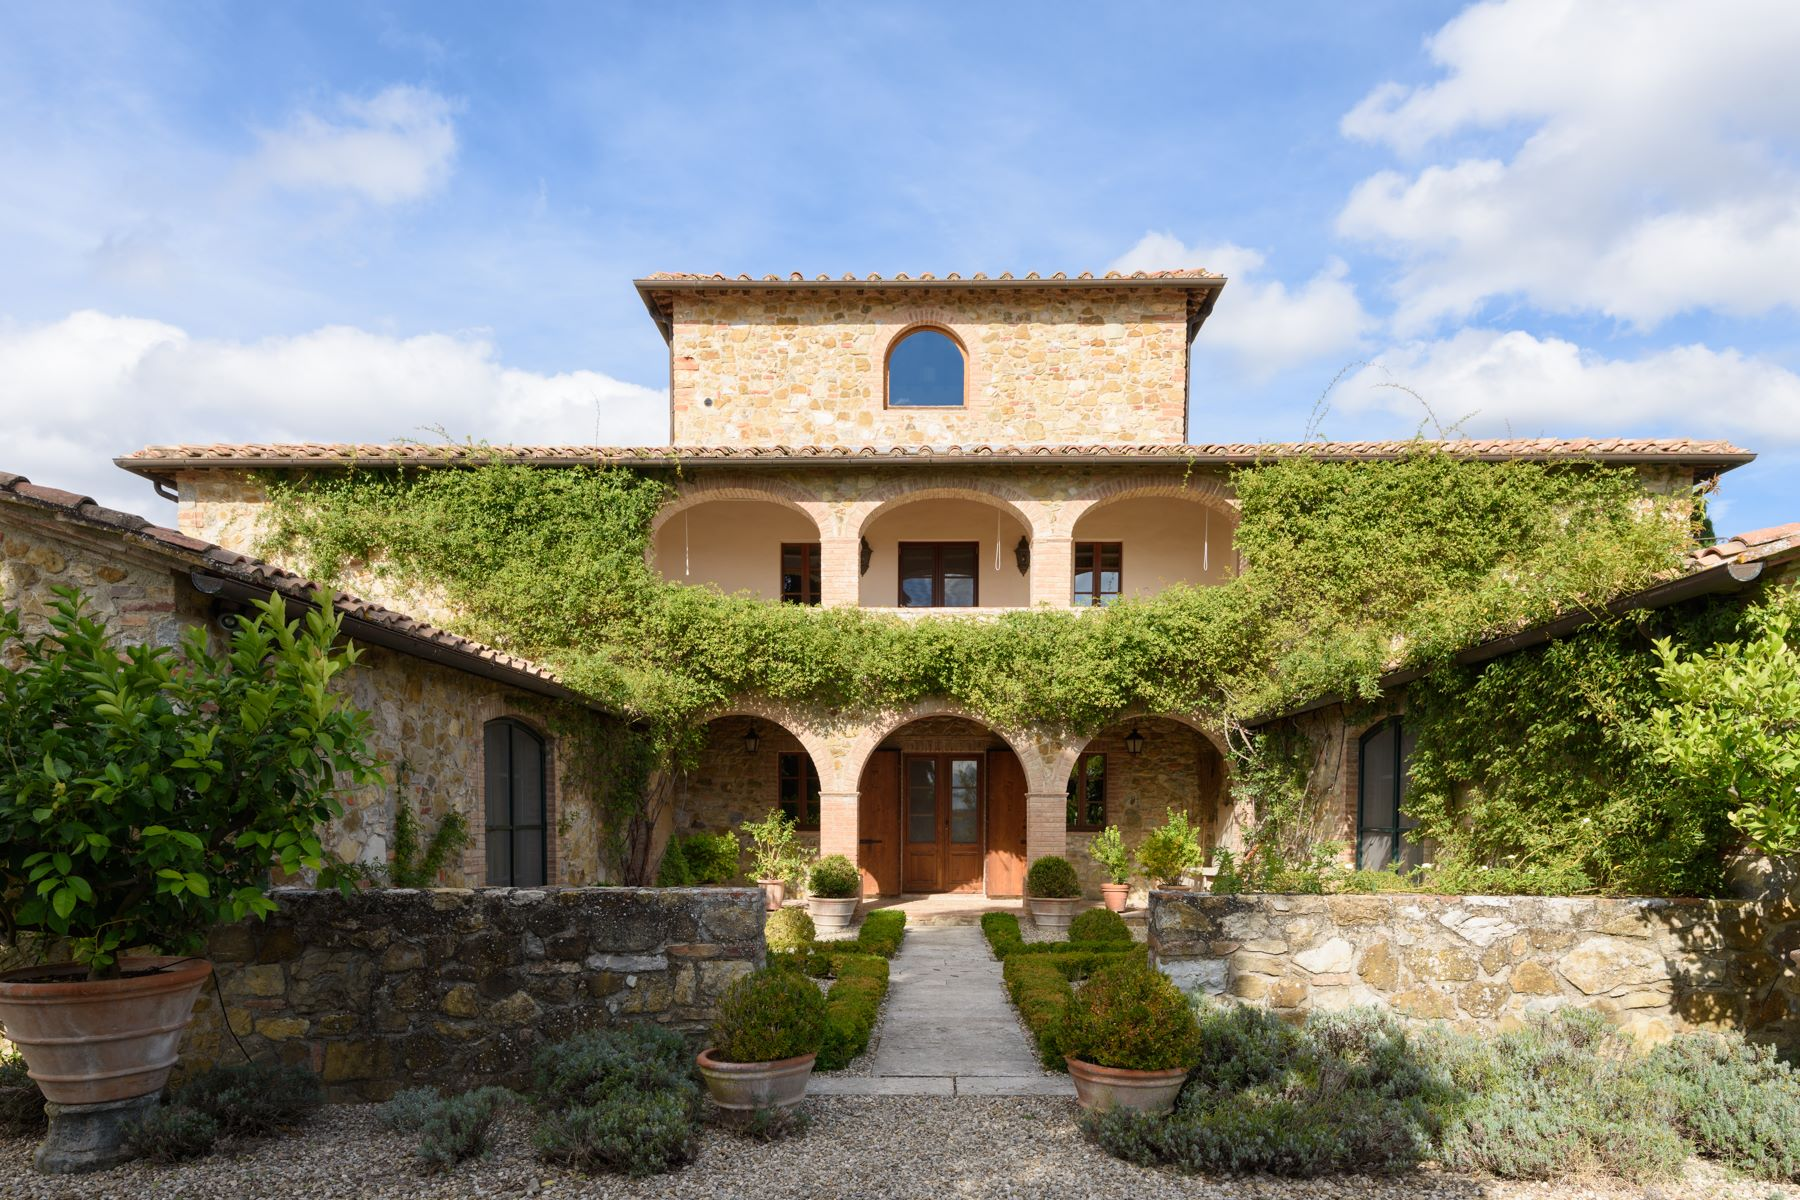 Single Family Home for Sale at Luxury Chianti country estate Castelnuovo Berardenga Siena, 53019 Italy